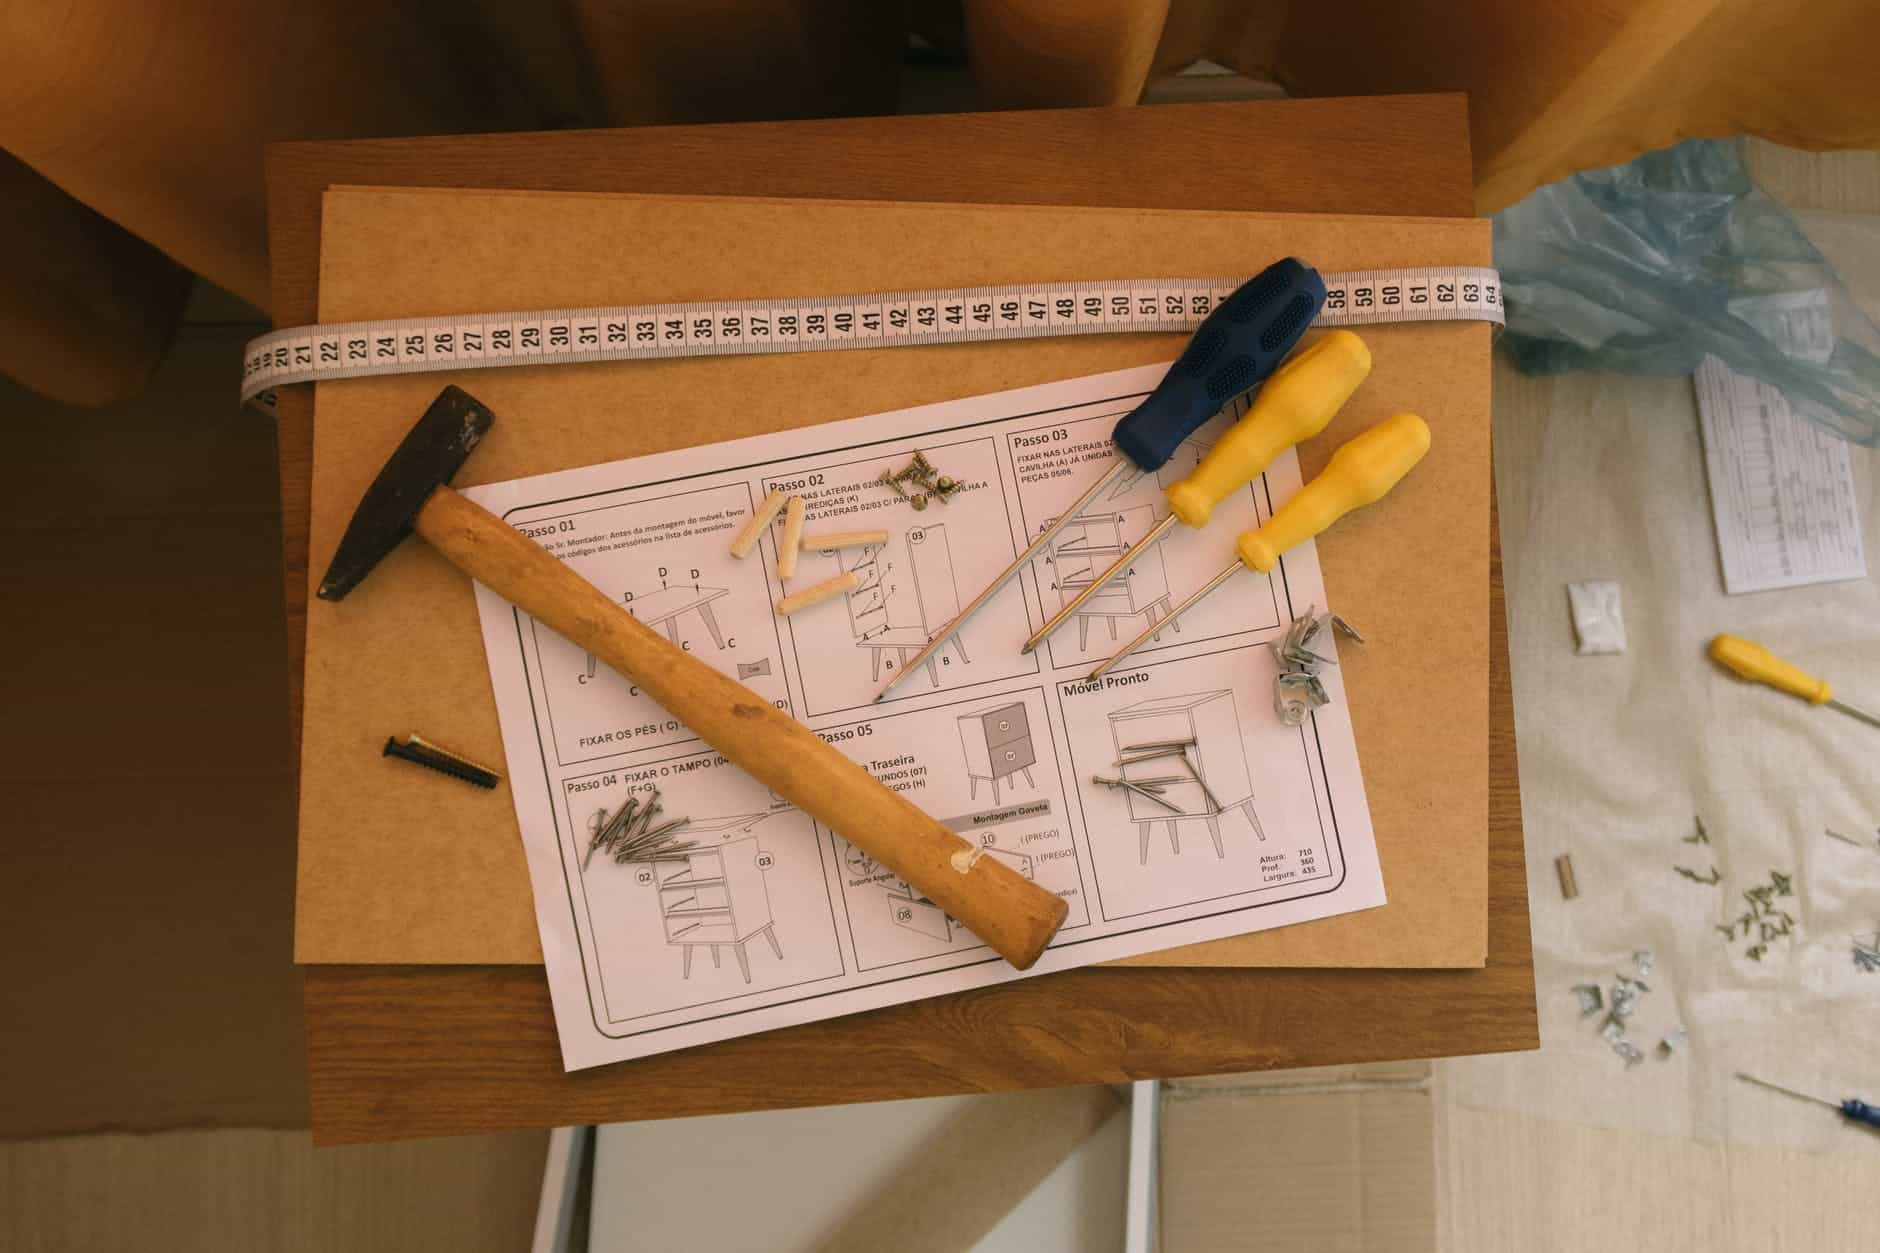 assembly tools and instructions on cabinet